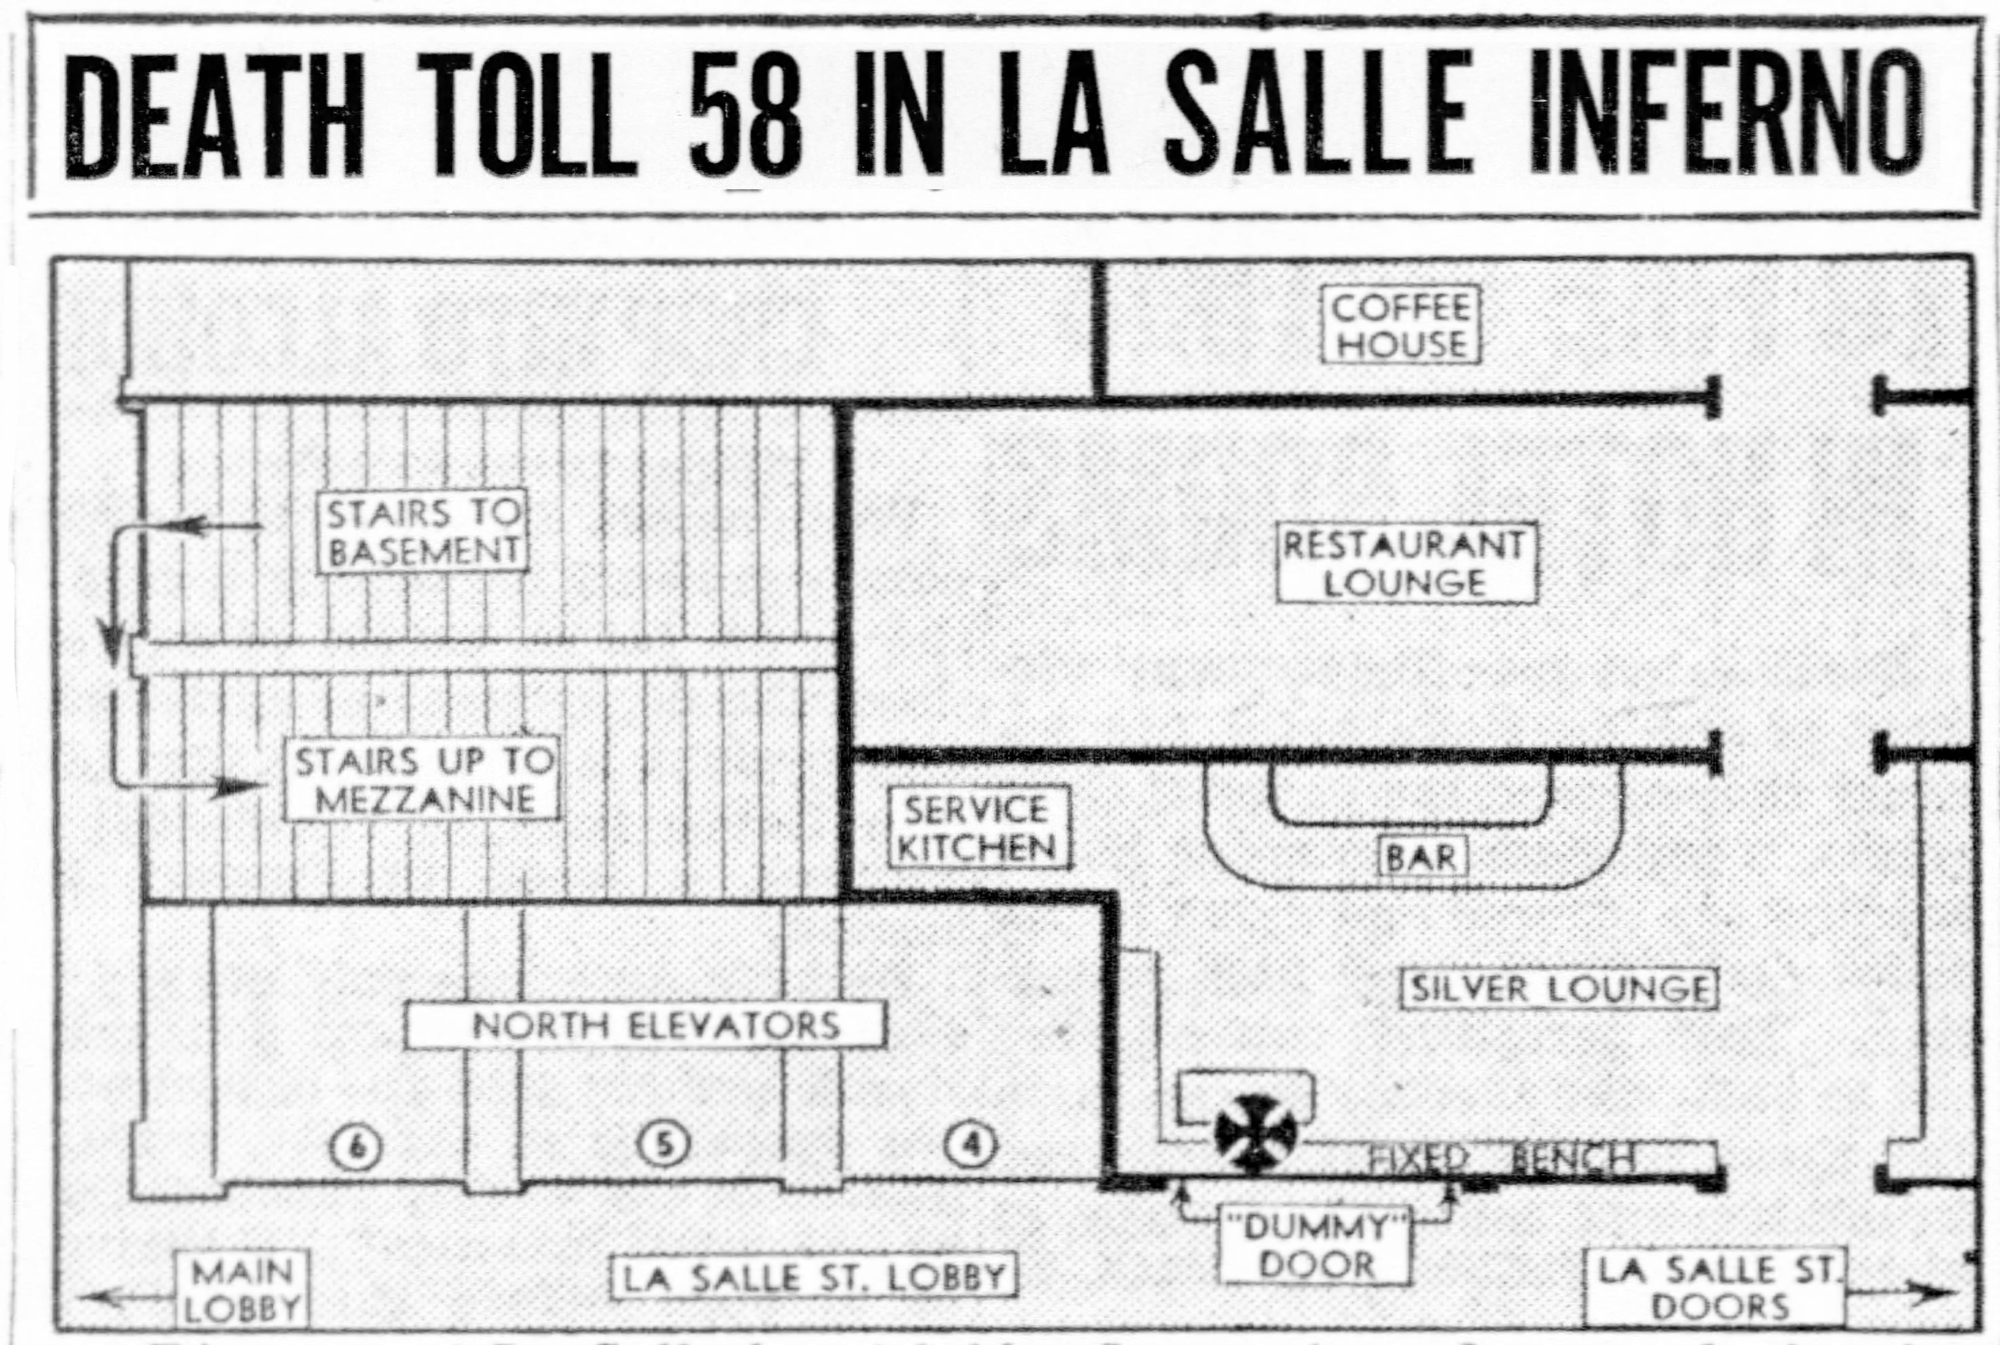 Lasalle Hotel Telephone Wiring Diagram Of The La Salle Lobby Floor Where Fire Raged Showing Proximity Lounge Bar To Elevators Center Blaze At Its Start